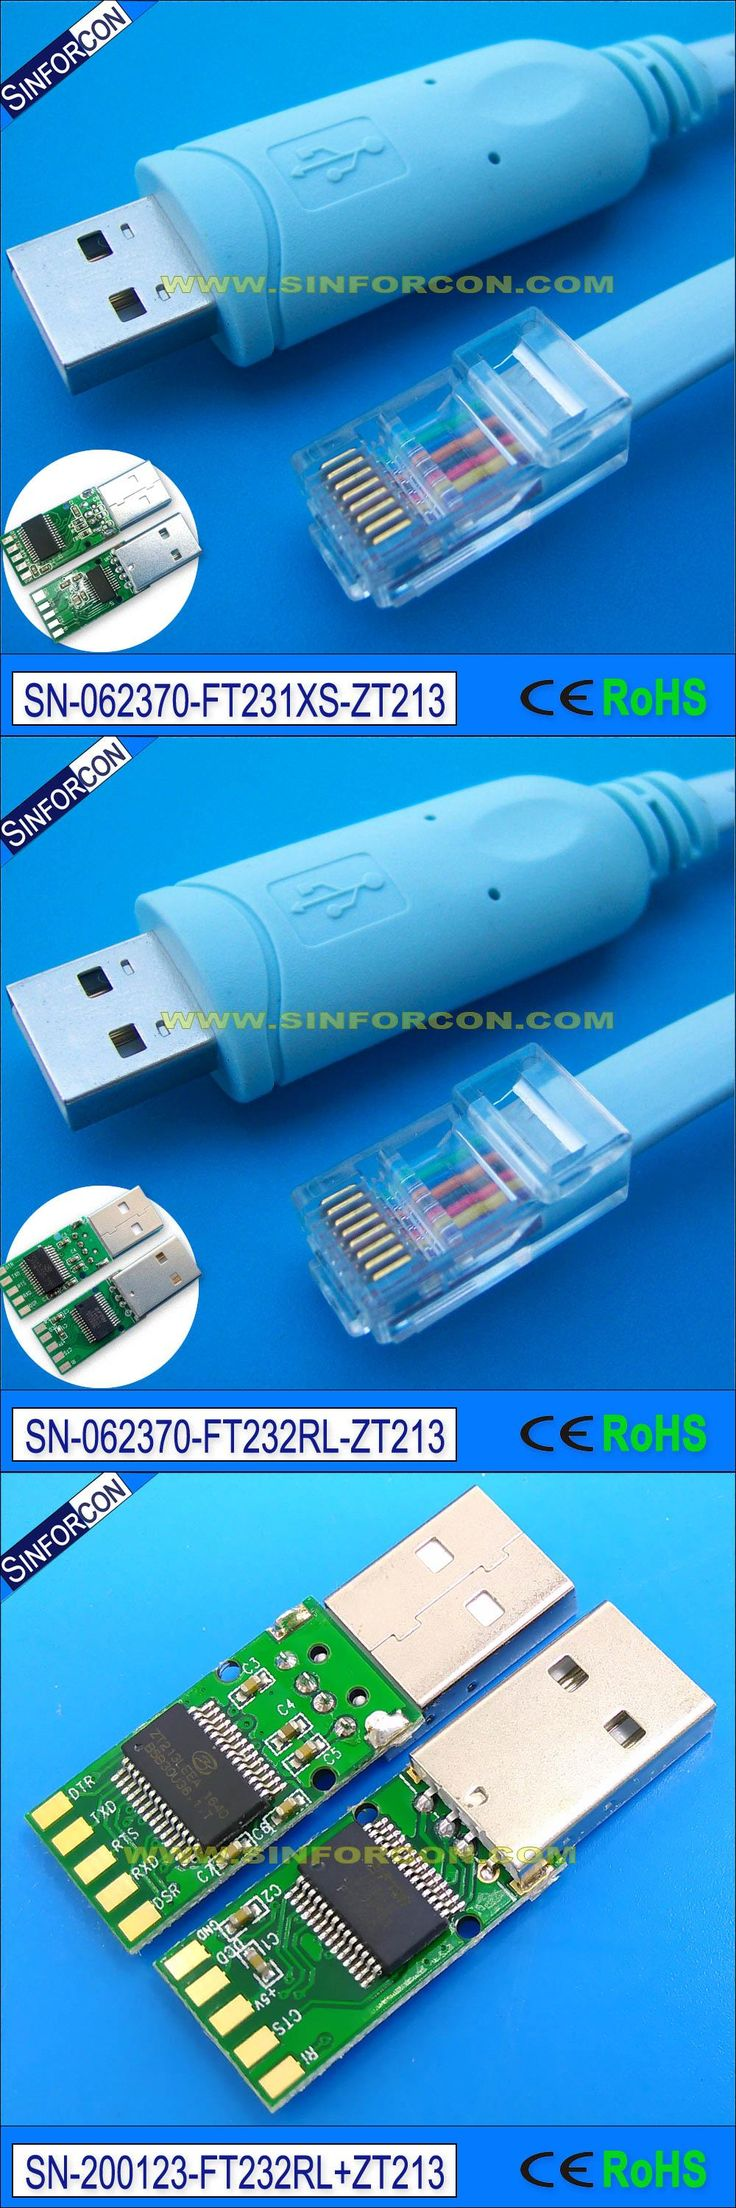 [Visit to Buy] usb serial drivers cable ftdi usb rs232 rj45 serial console cable for h3c 9306 huawi fortinet cisco router switch #Advertisement